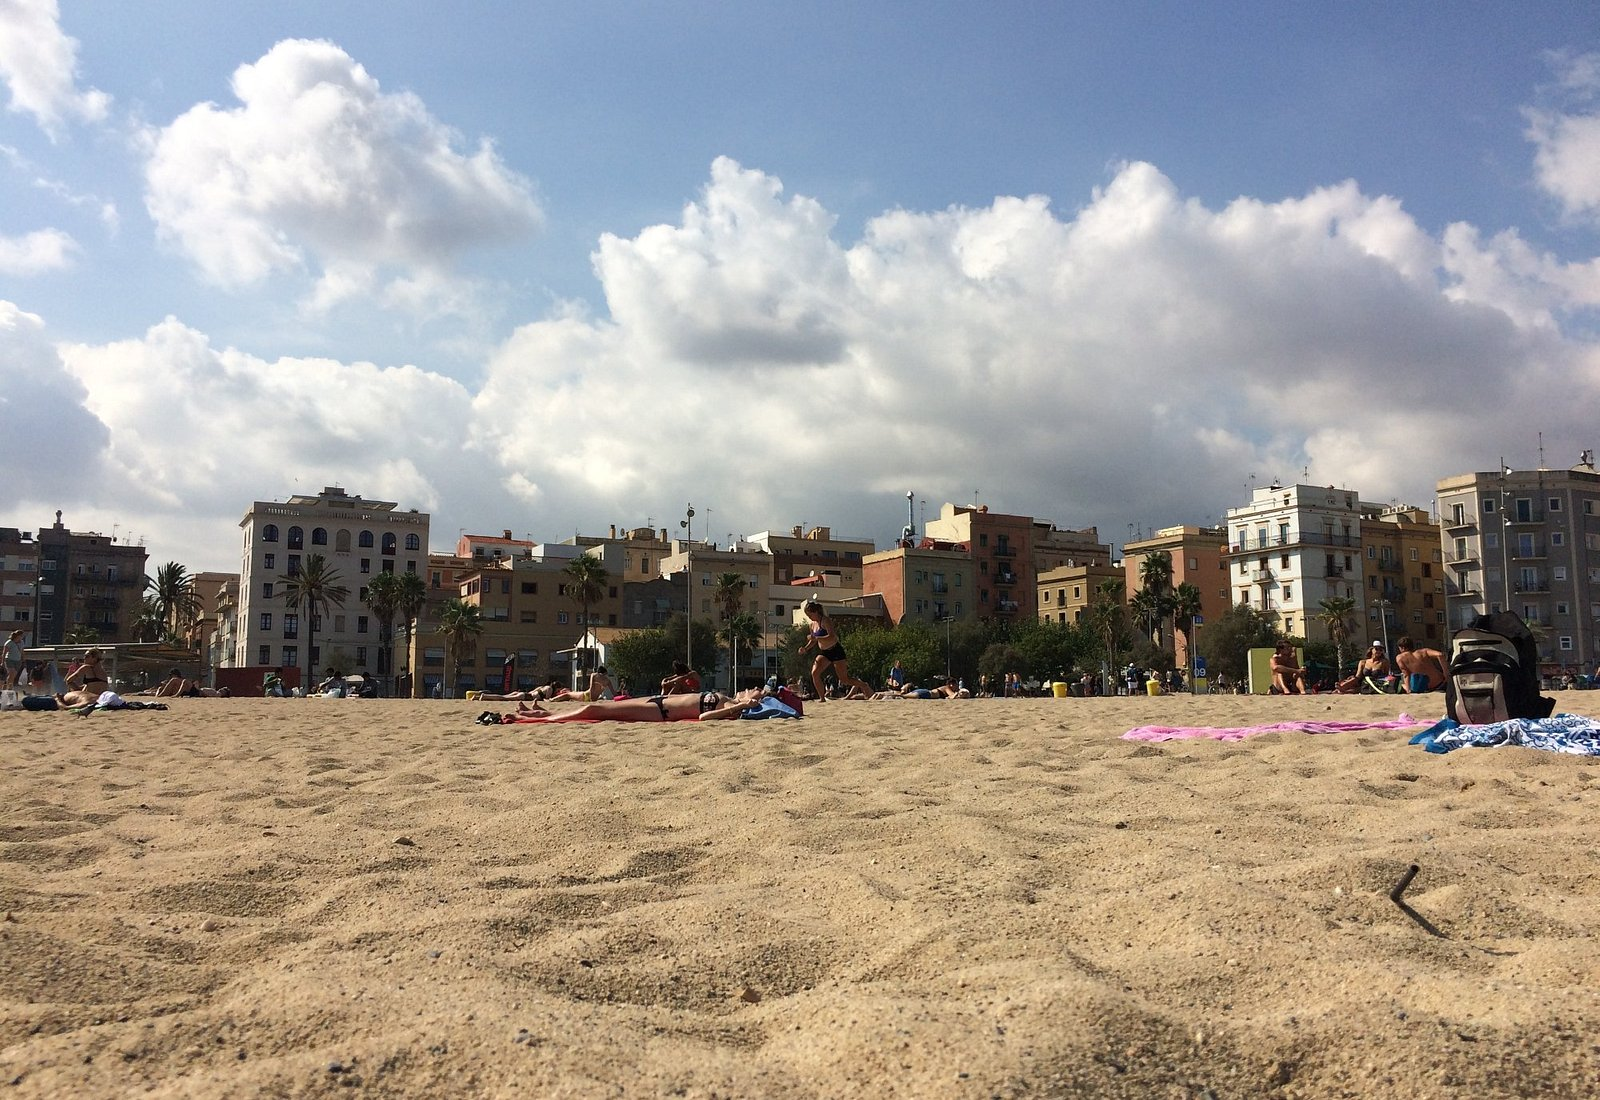 Barcelona Town Beach, lovely but persistent hecklers with drinks and food and massages spoilt it